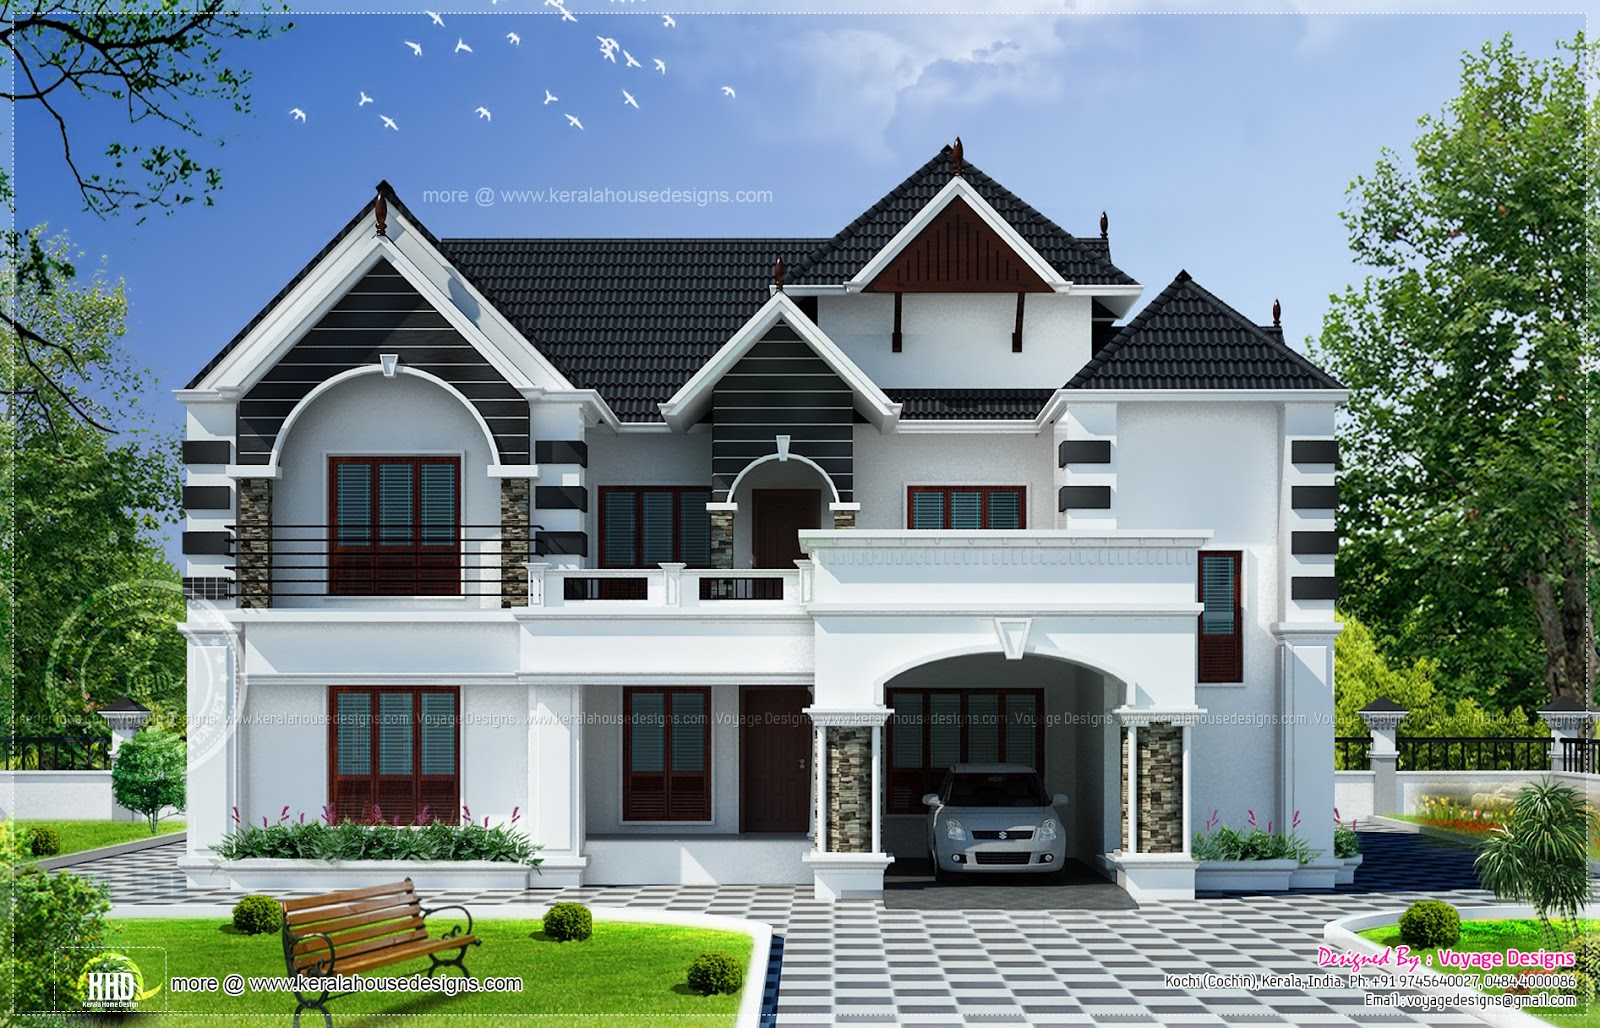 4 bedroom colonial style house kerala home design and for Home style design ideas